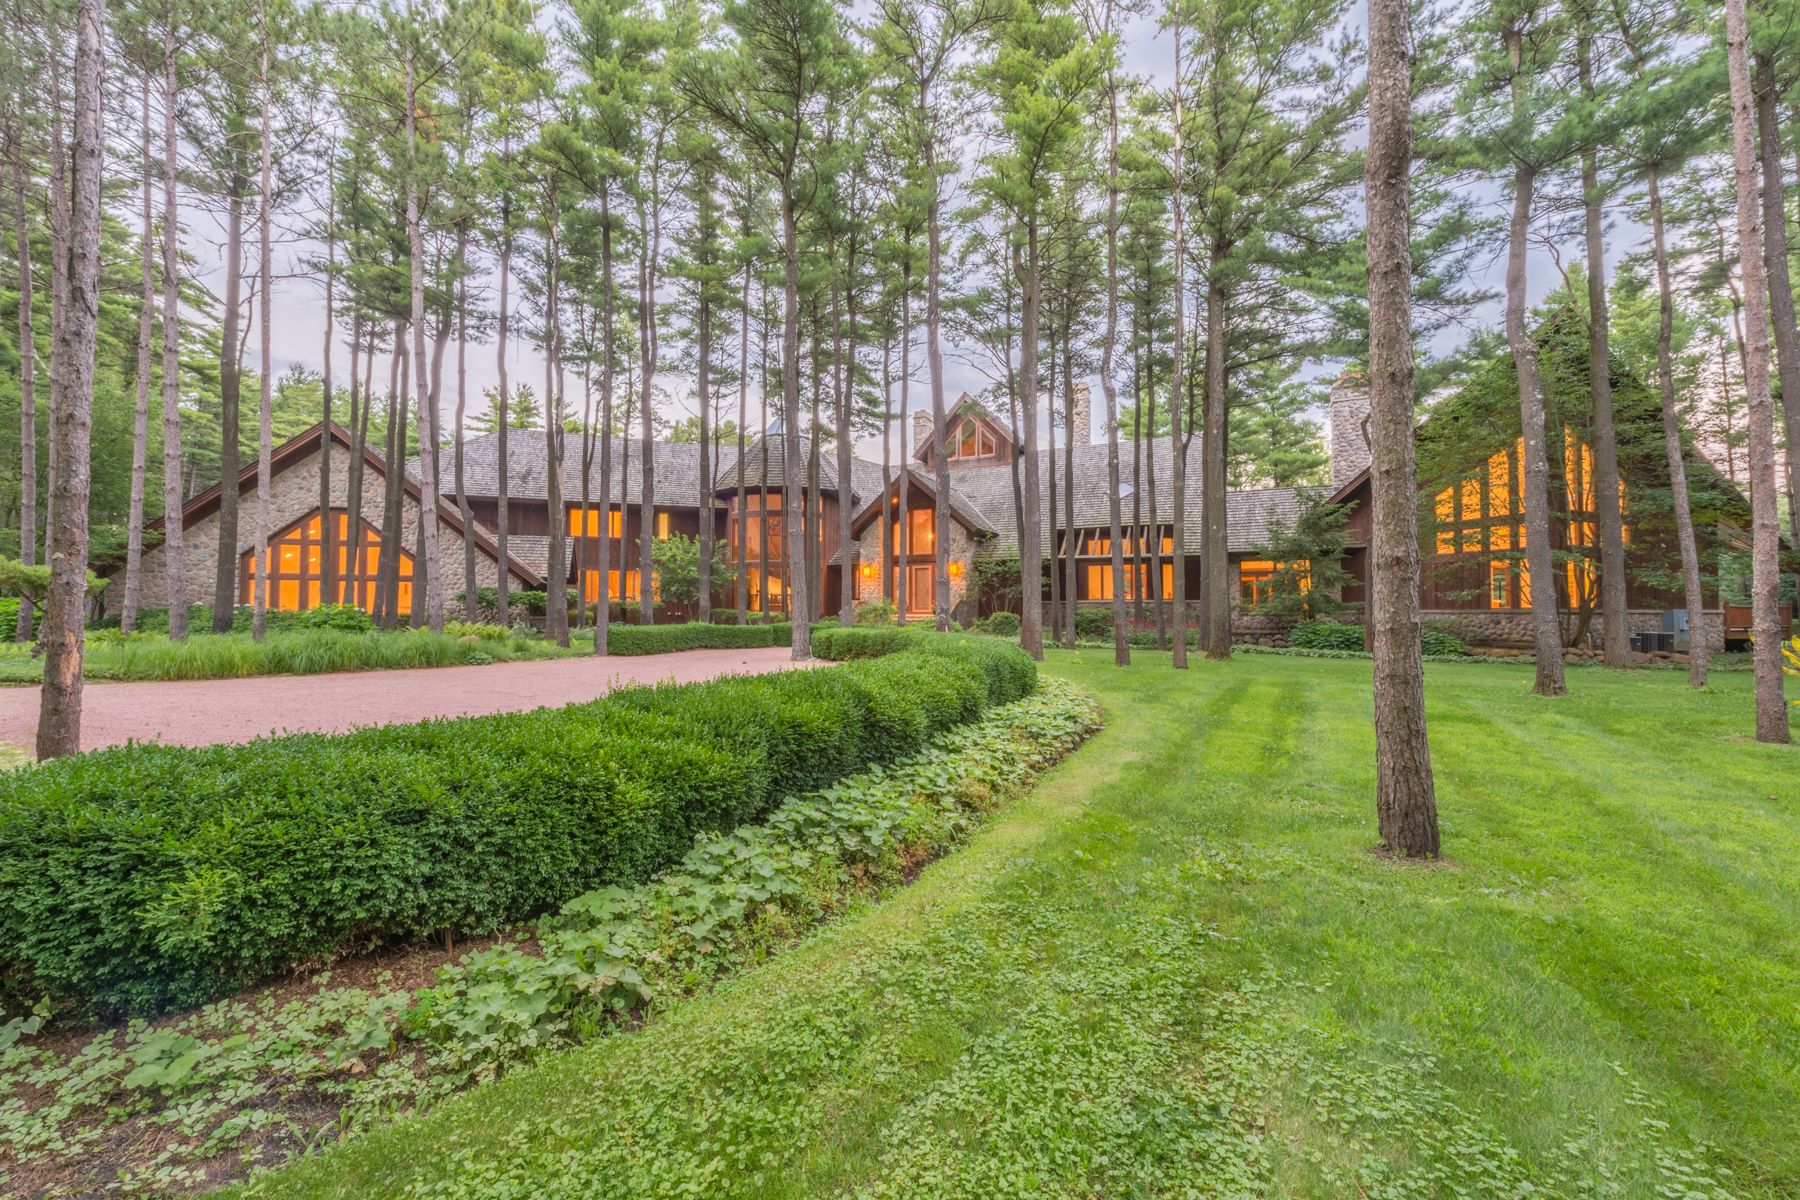 Single Family Home for Sale at Northwoods Retreat on 33 Acres in Barrington Hills 207 Woodhaven Lane Barrington Hills, Illinois 60010 United States